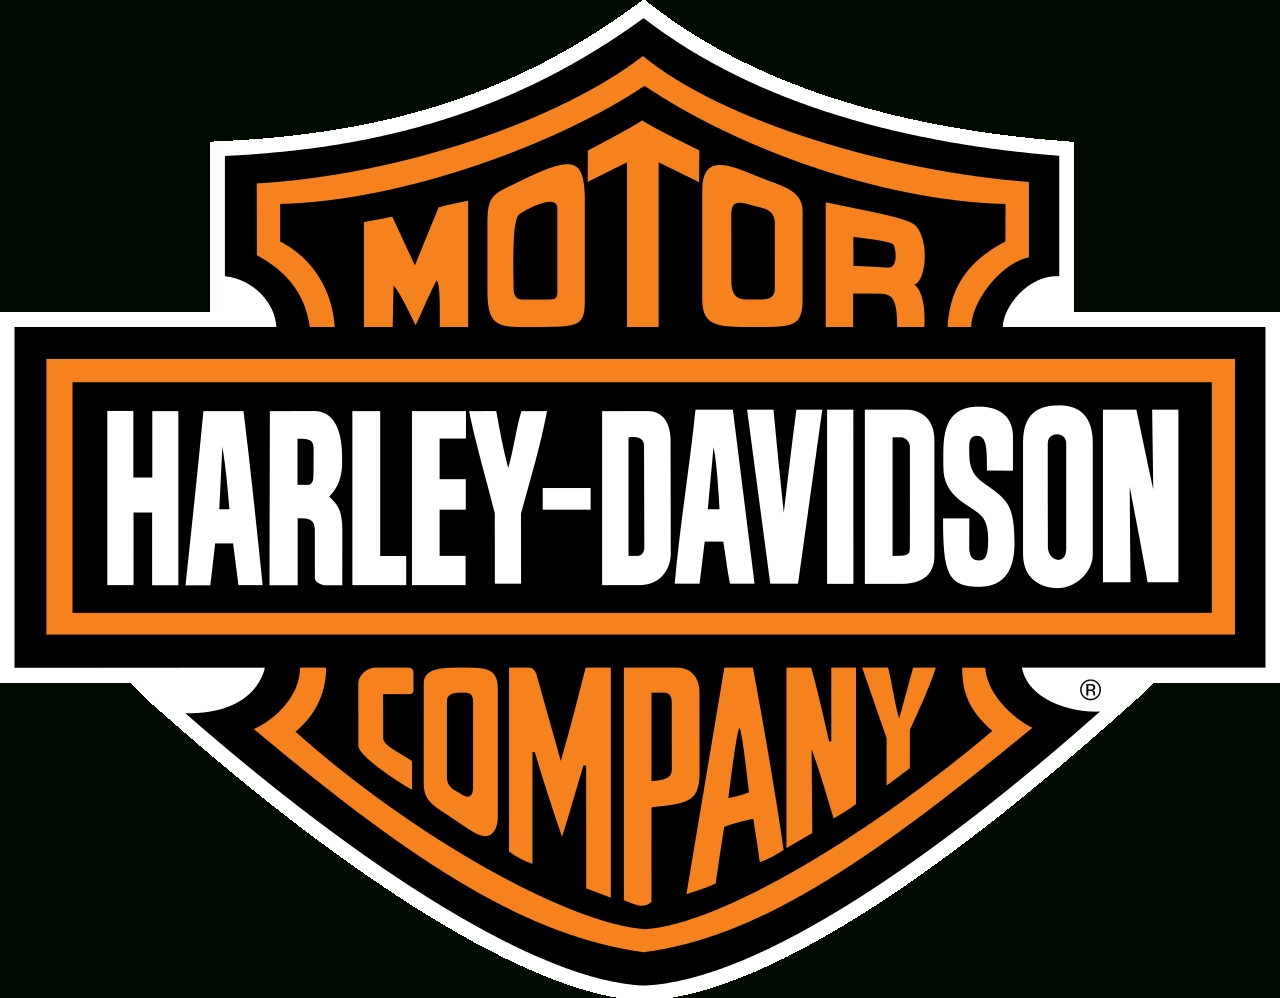 10 Best Hd Harley Davidson Logo FULL HD 1080p For PC Background